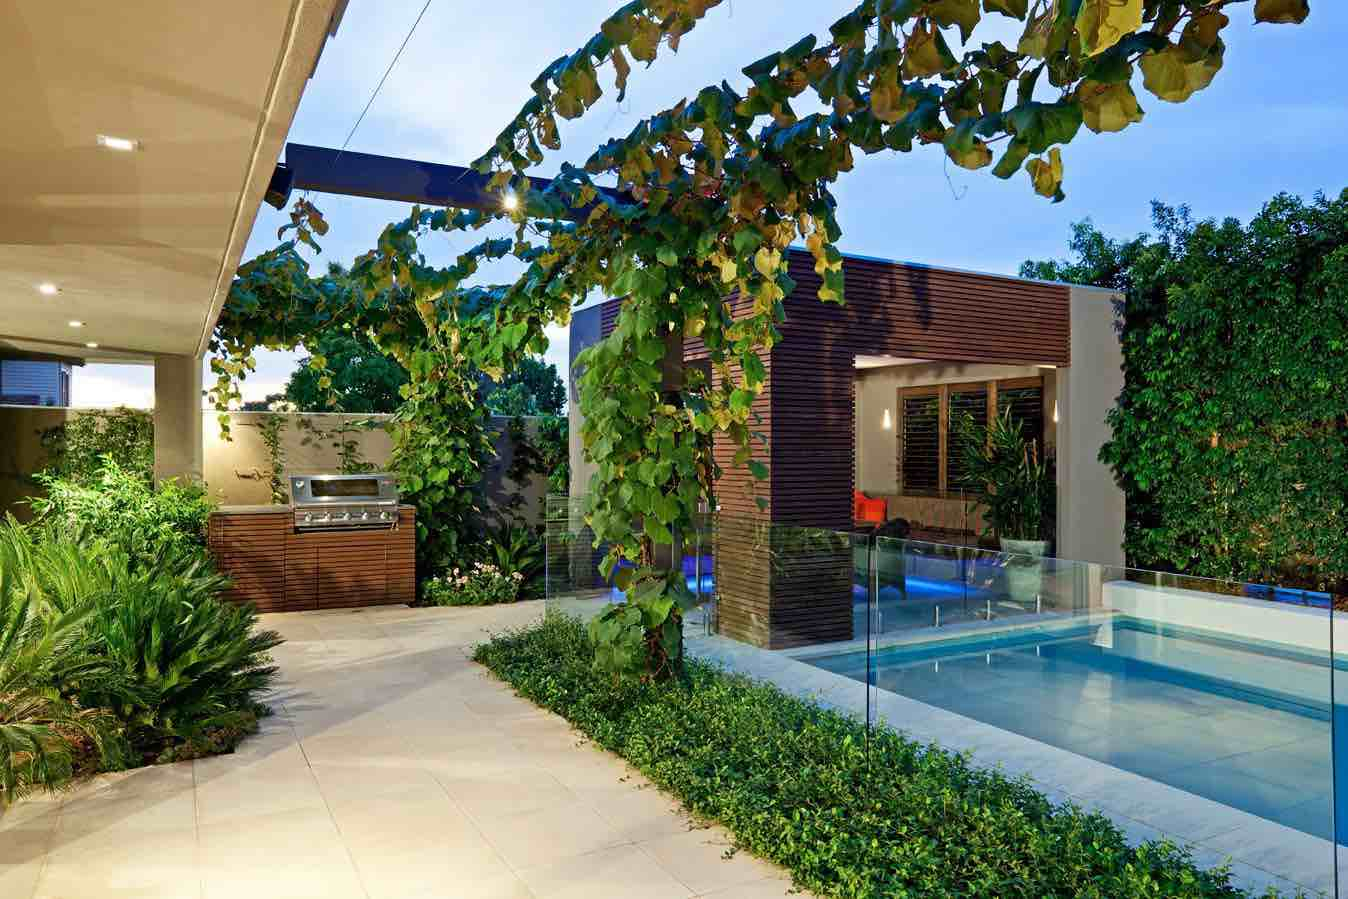 41 backyard design ideas for small yards worthminer for Small outdoor decorating ideas